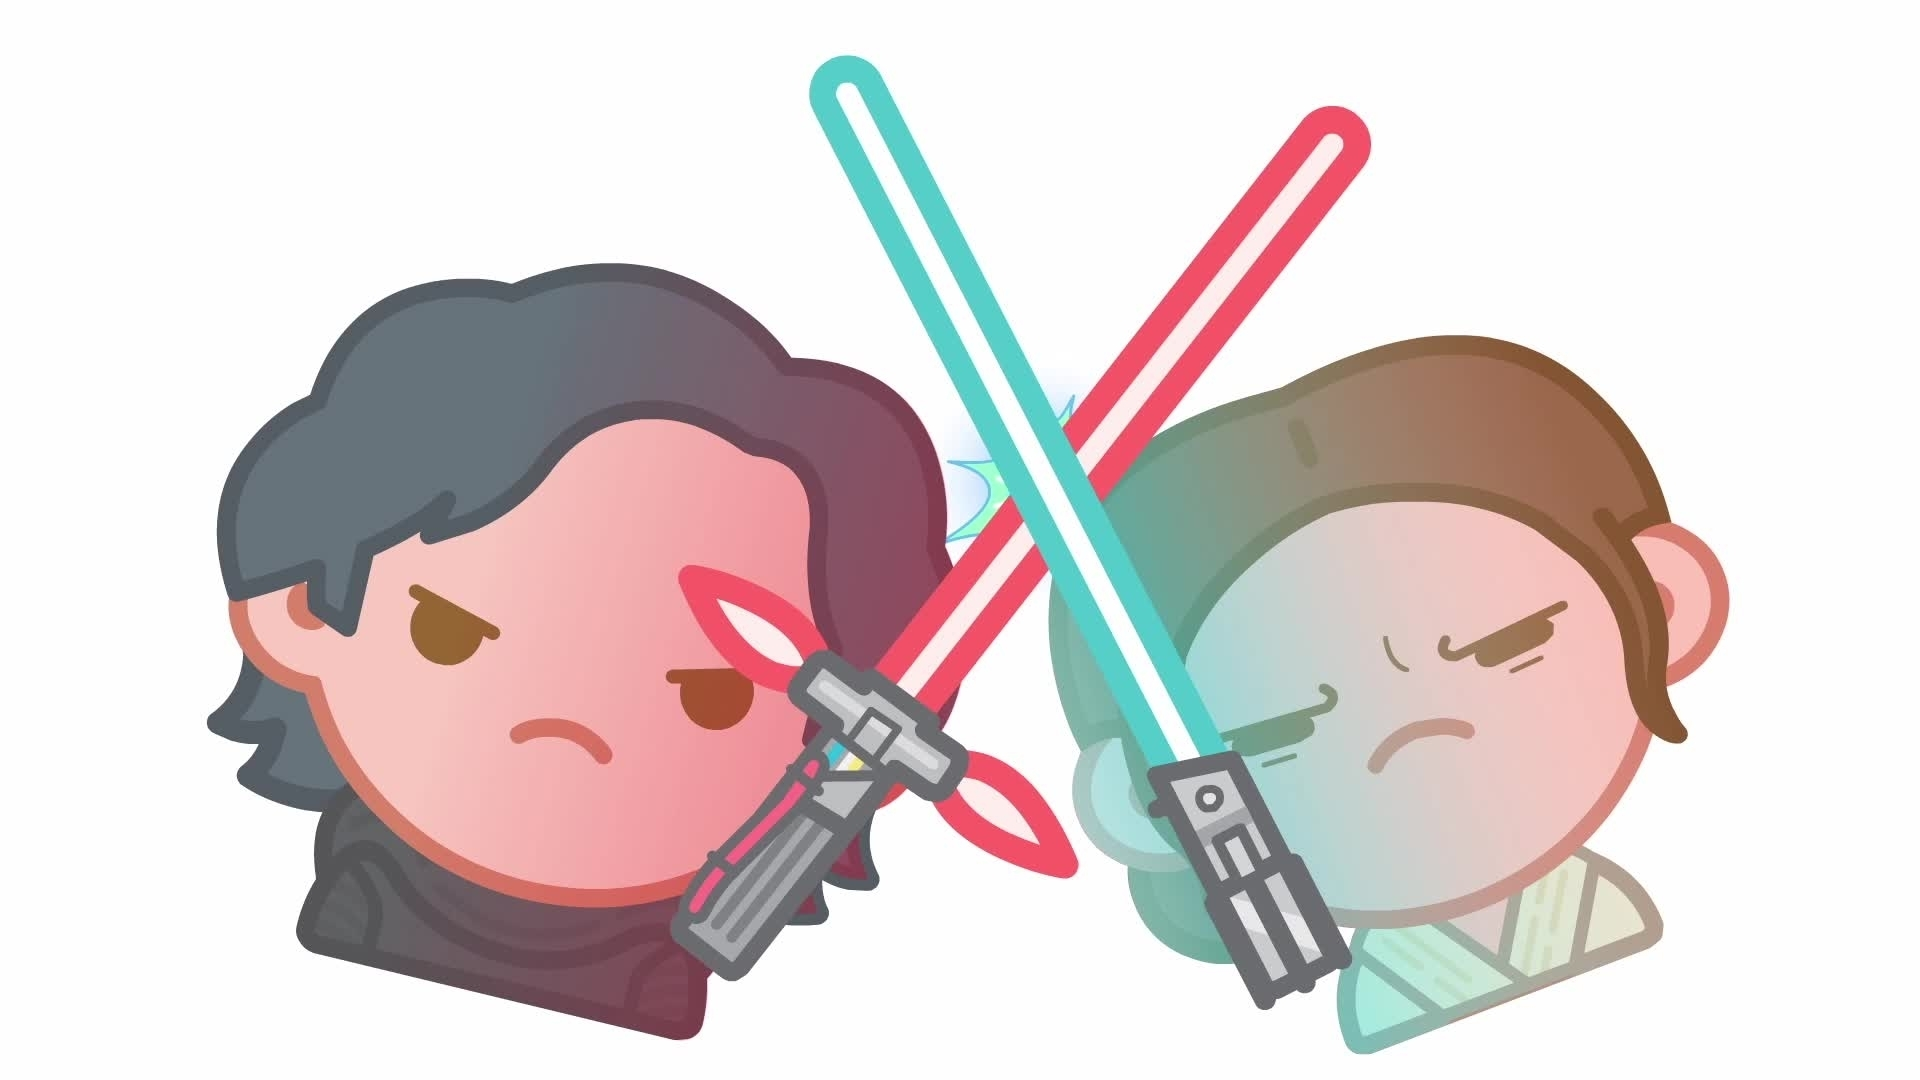 Star Wars: The Force Awakens verteld met emoji